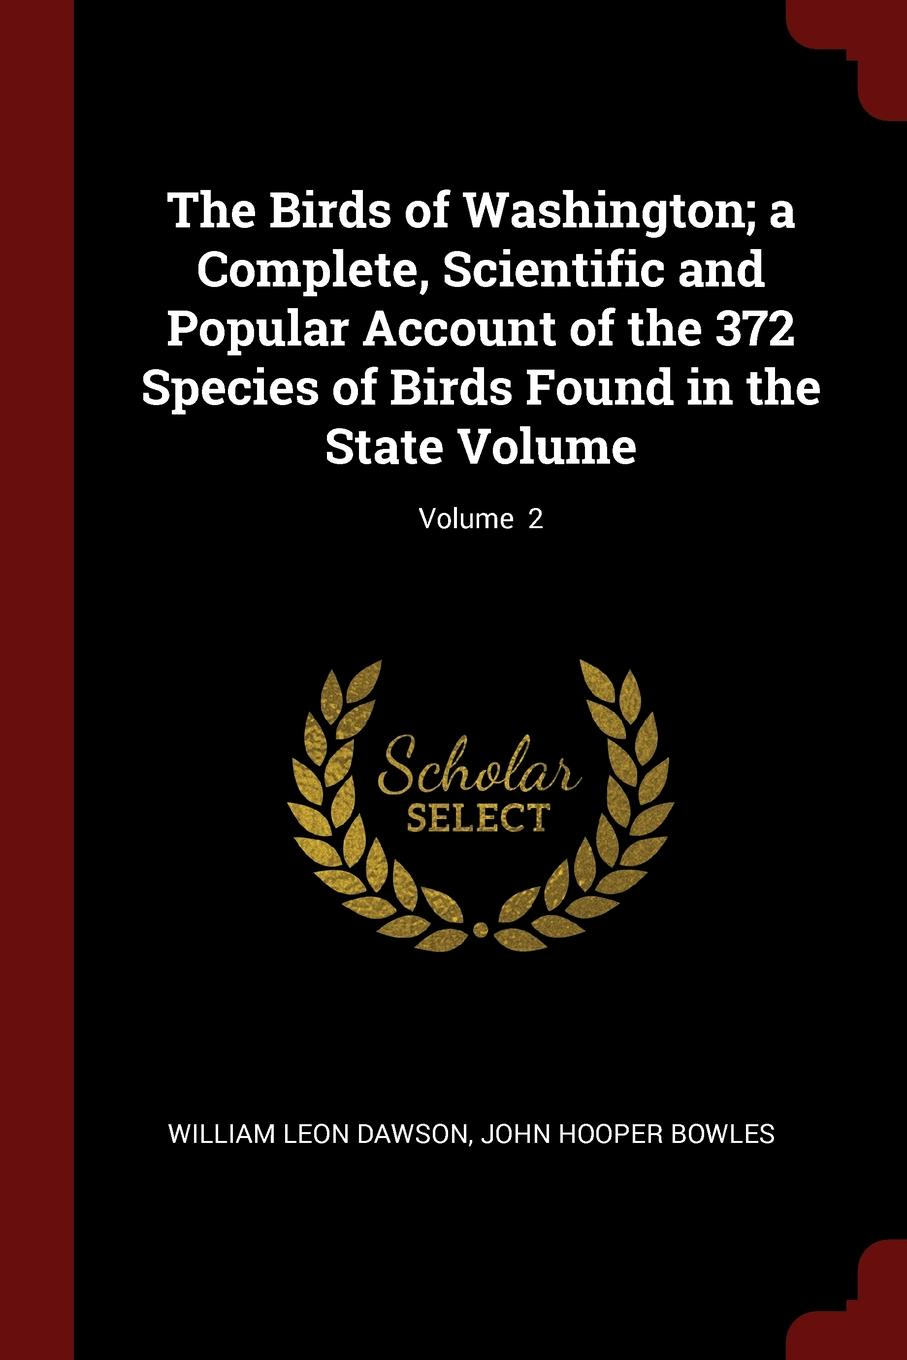 Фото - William Leon Dawson, John Hooper Bowles The Birds of Washington; a Complete, Scientific and Popular Account of the 372 Species of Birds Found in the State Volume; Volume 2 william leon dawson the birds of ohio a complete scientific and popular description of the 320 species of birds found in the state volume 2